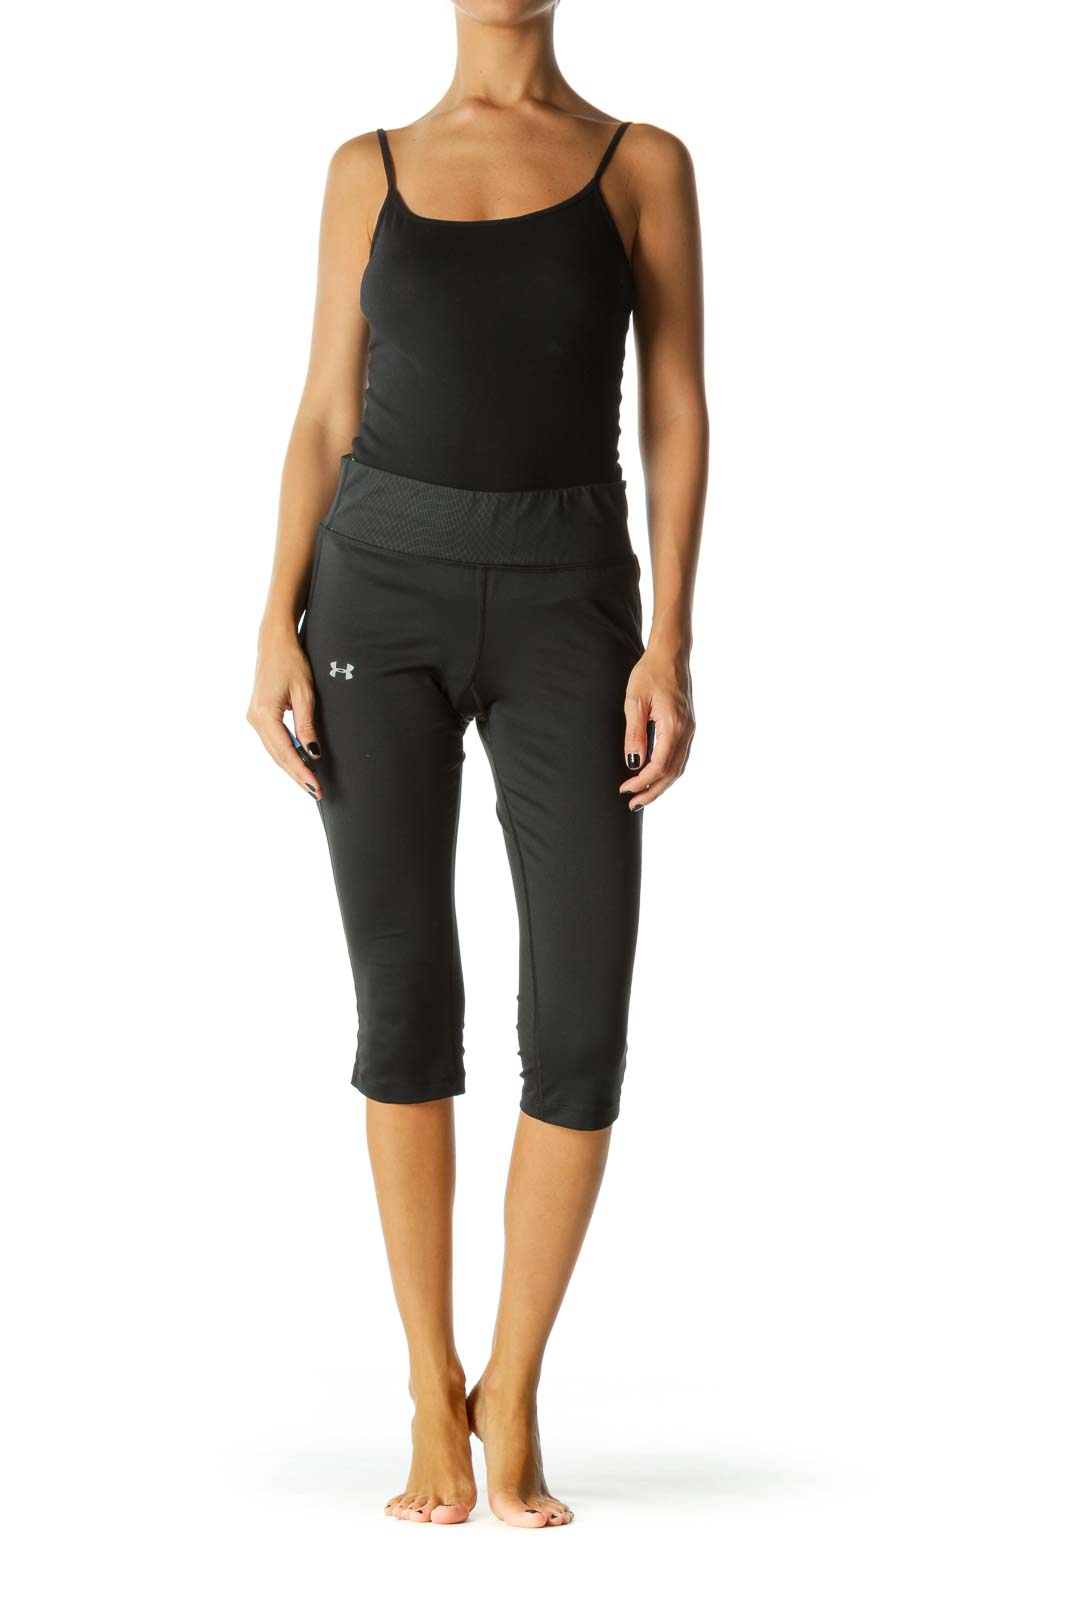 Black Neon Waistband Cropped Legging